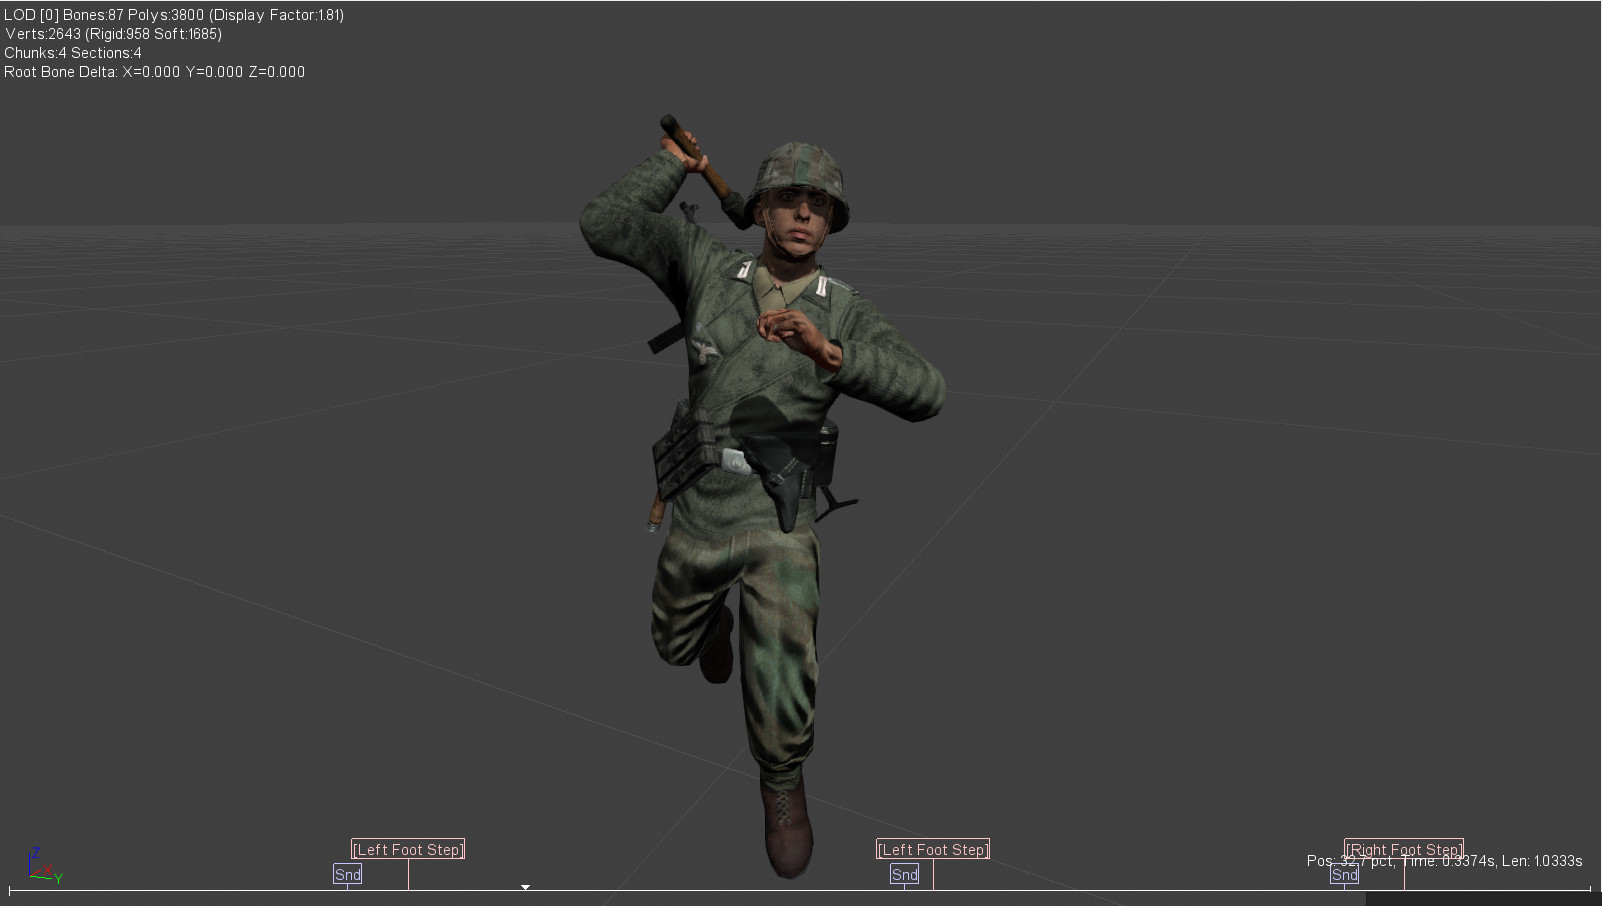 More uniforms  image - Heroes of the West mod for Red